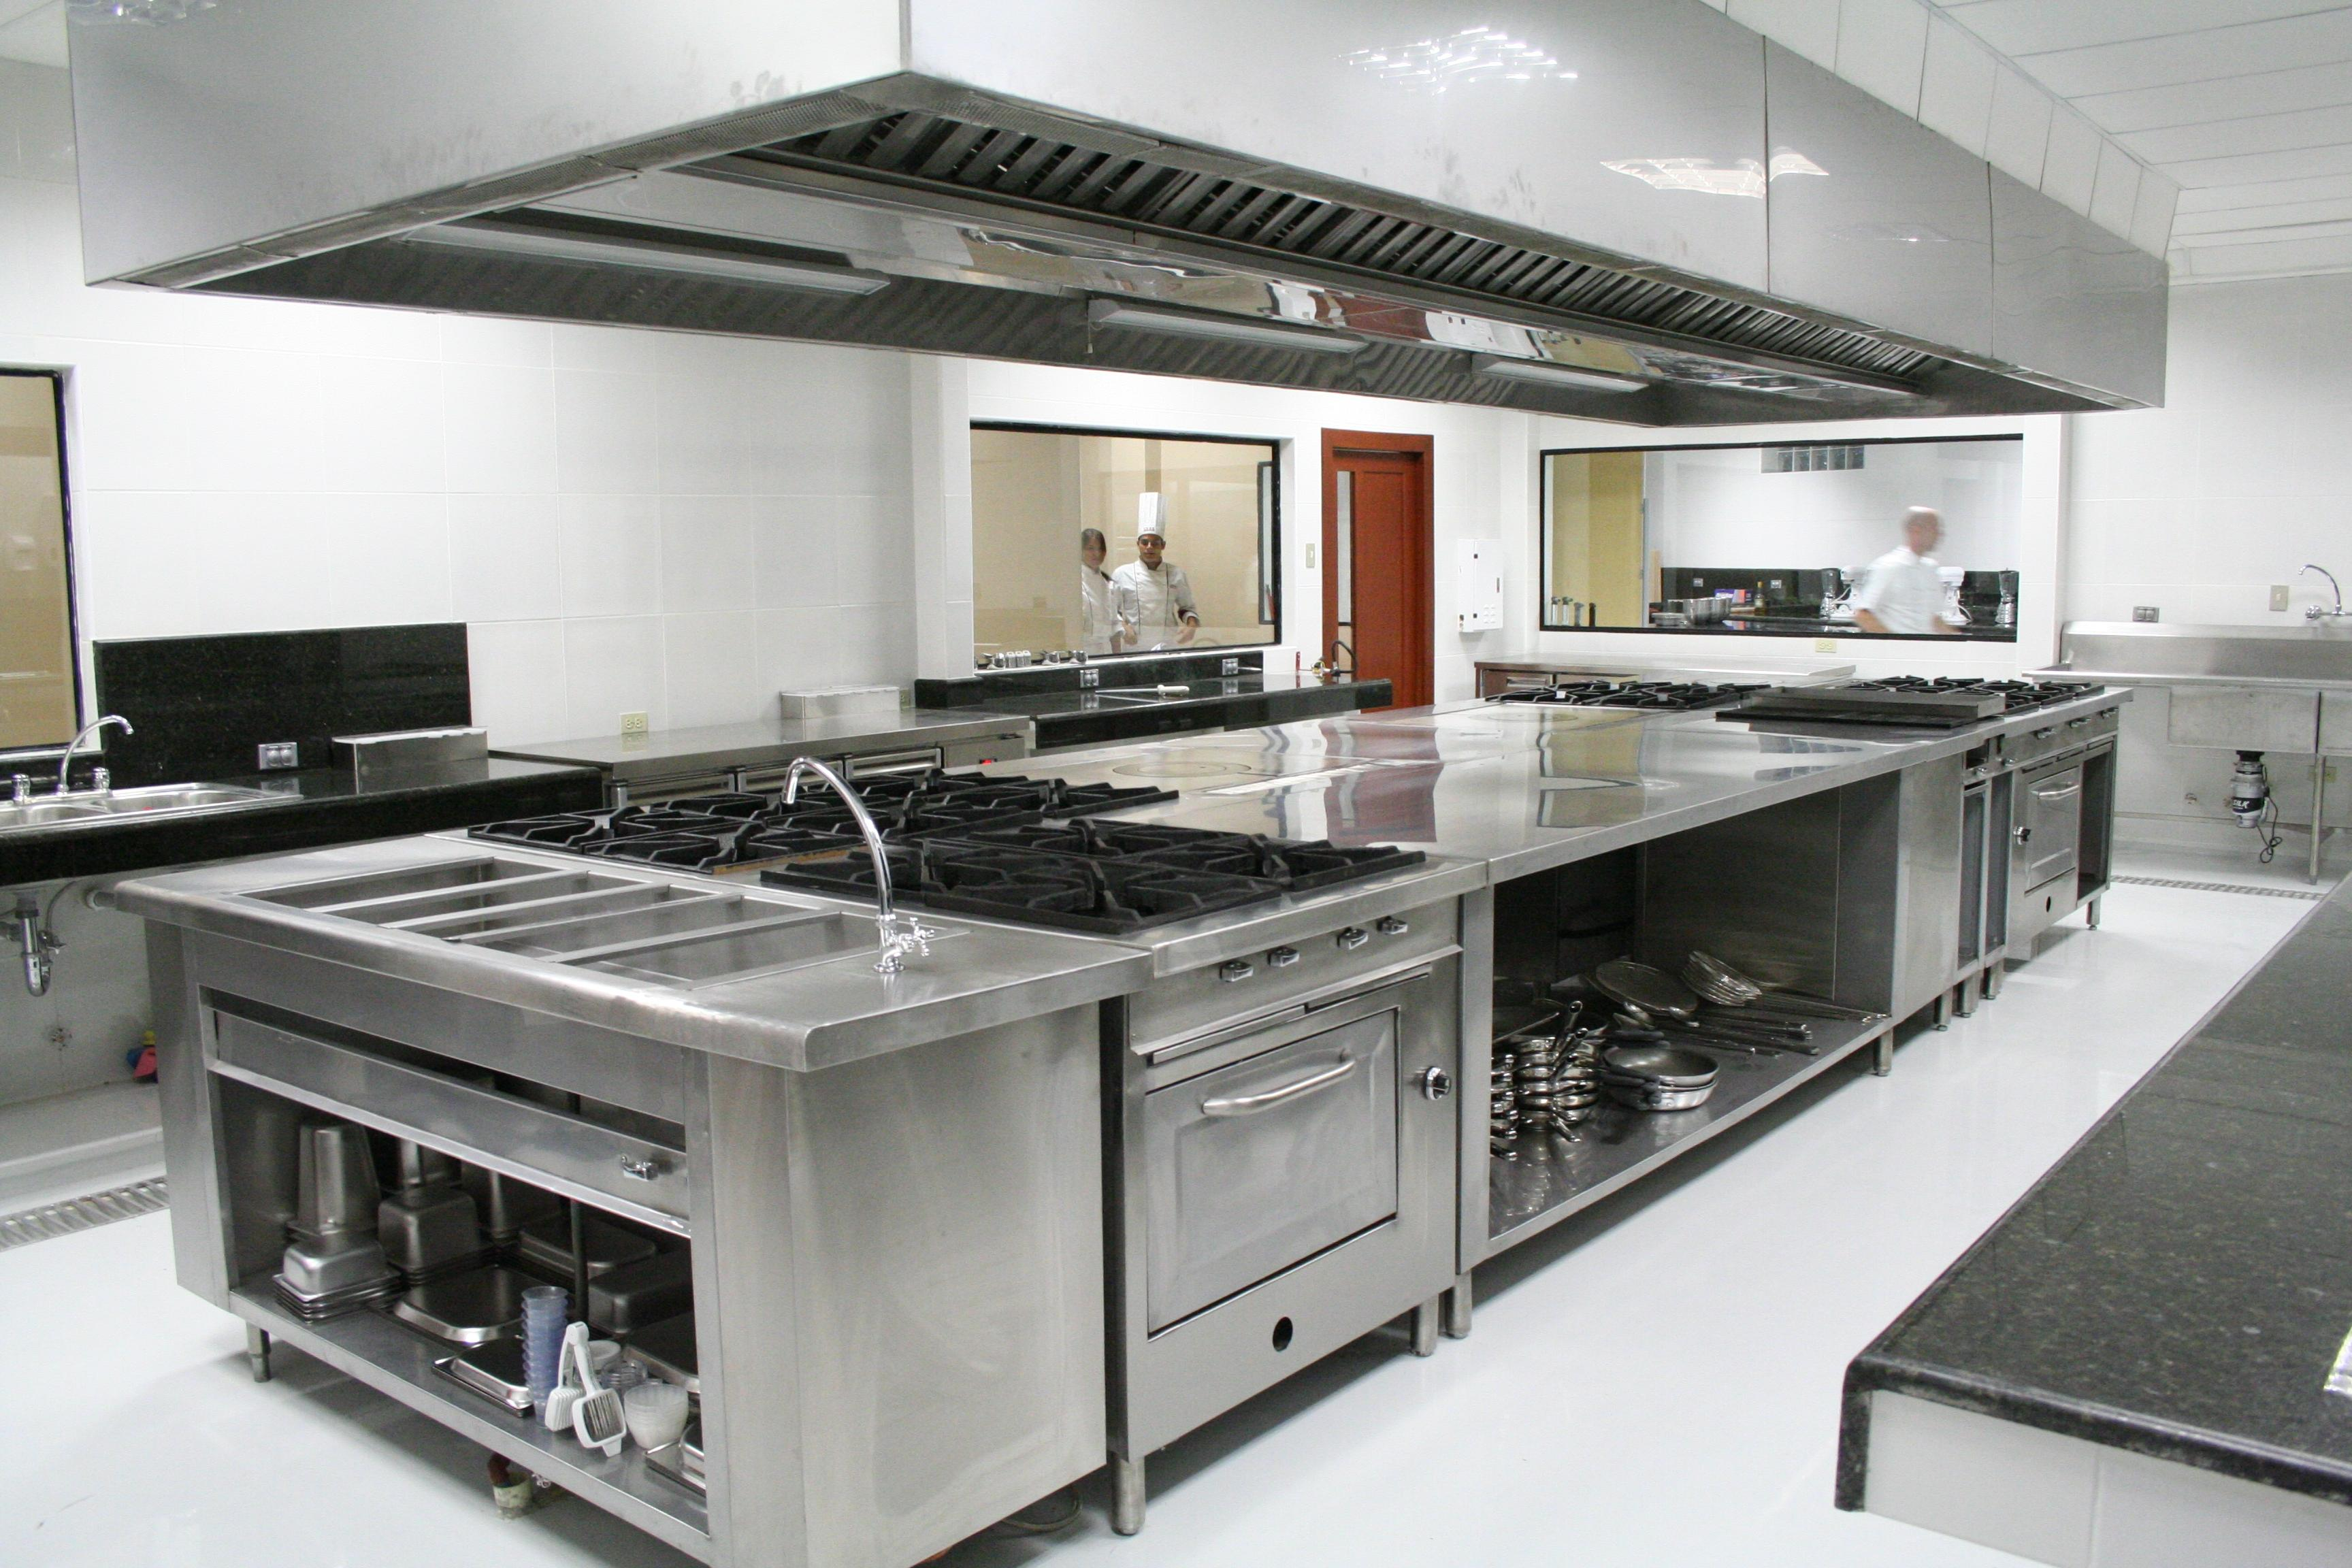 Grant Funded Commercial Kitchen To Cook Up Small Business Support Wgcu News